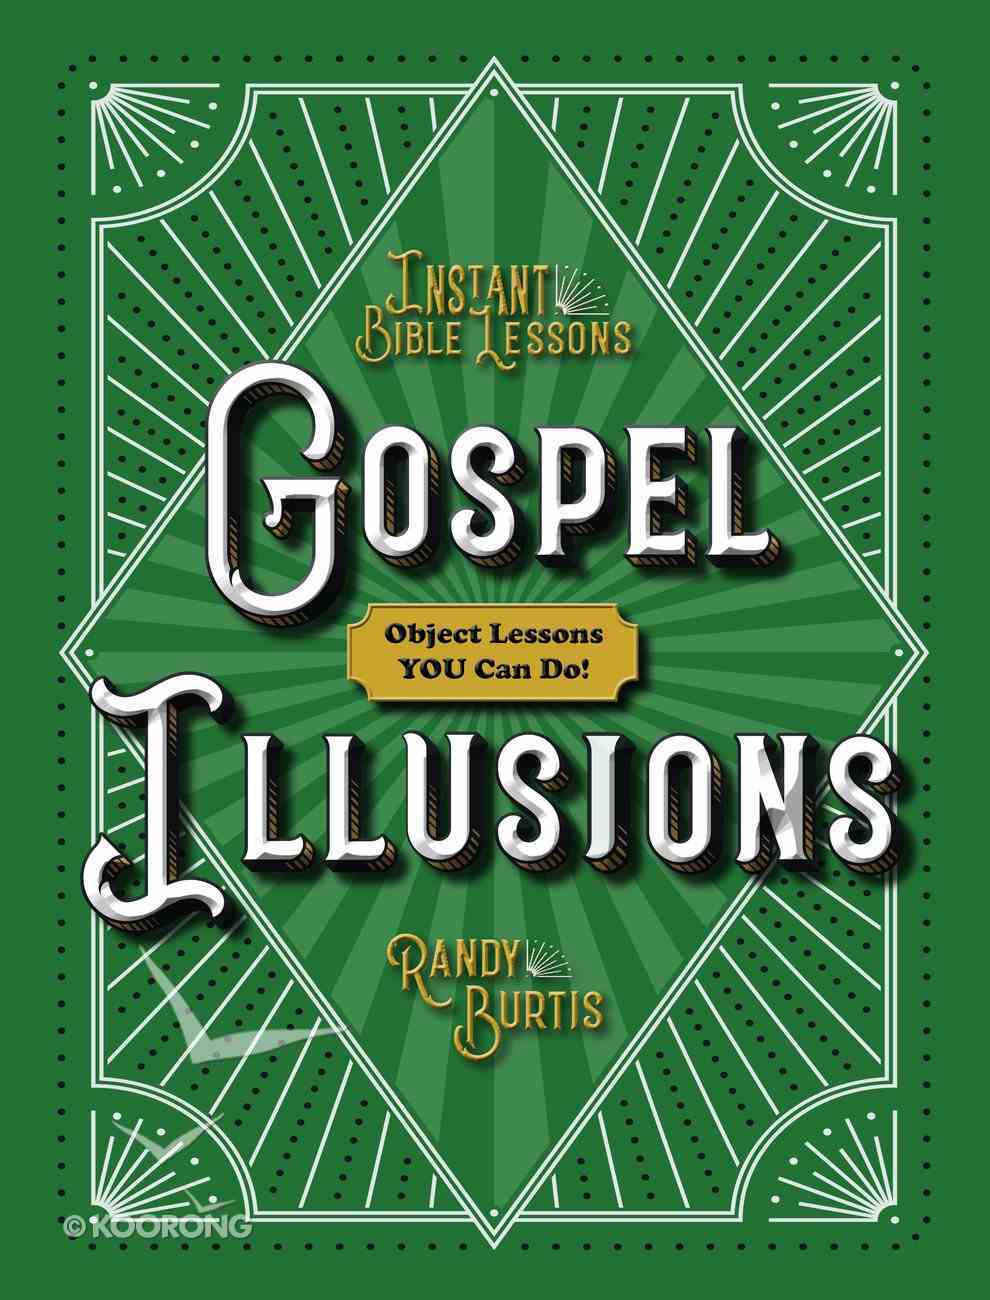 Gospel Illusions: Object Lessons You Can Do! (Instant Bible Lessons Series) Paperback